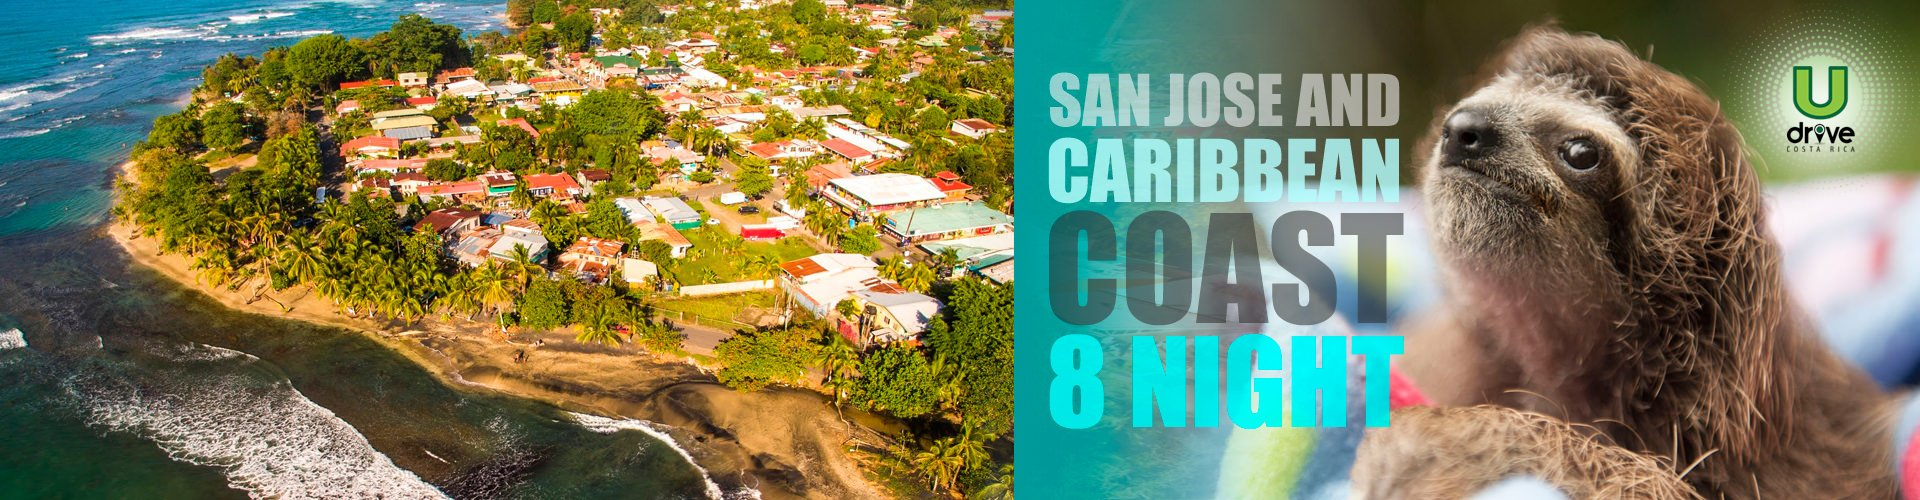 San Jose and Caribbean Coast 8 Night